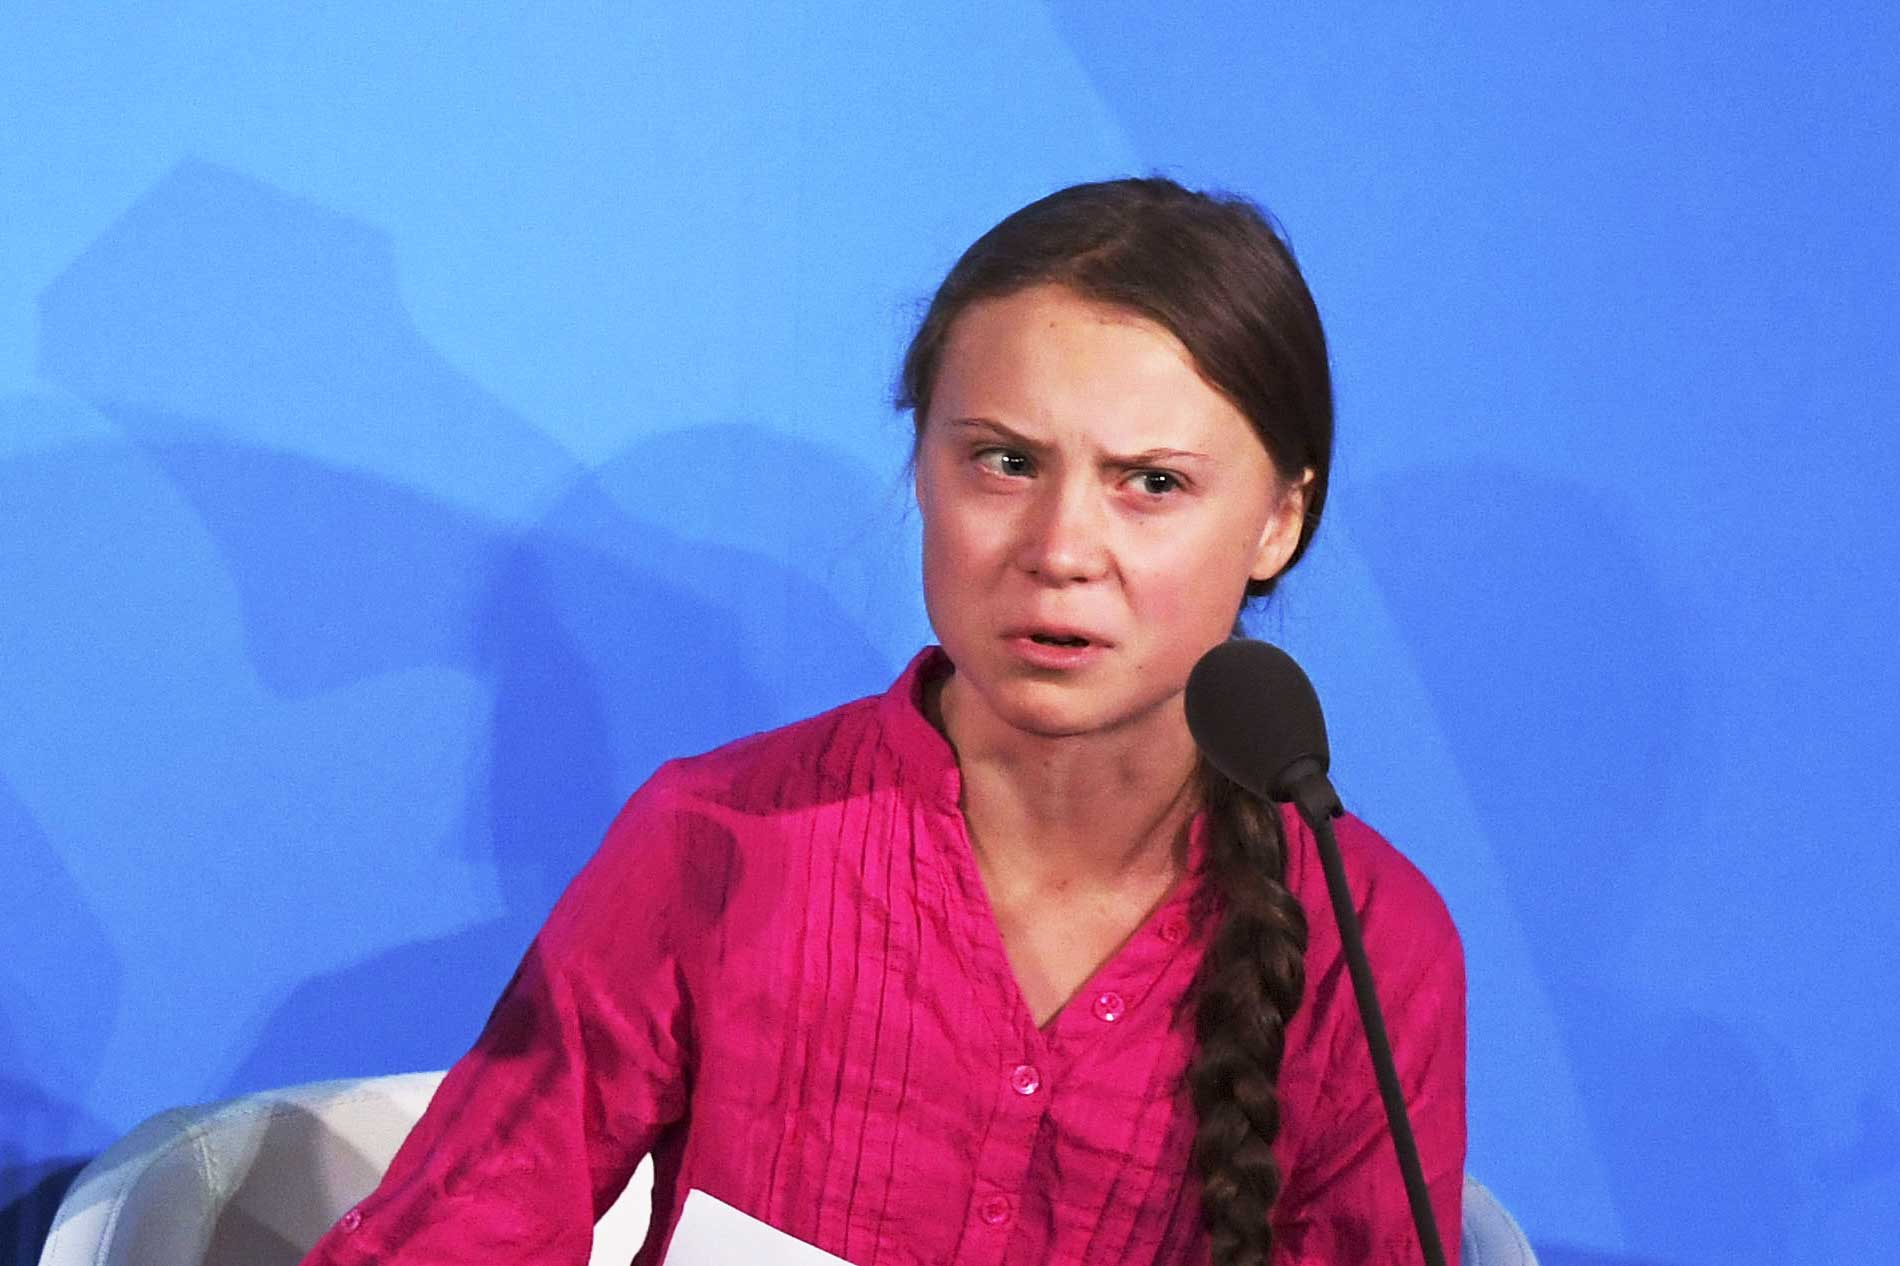 """""""You have stolen my dreams"""": Greta Thunberg rages at world leaders at UN climate summit"""